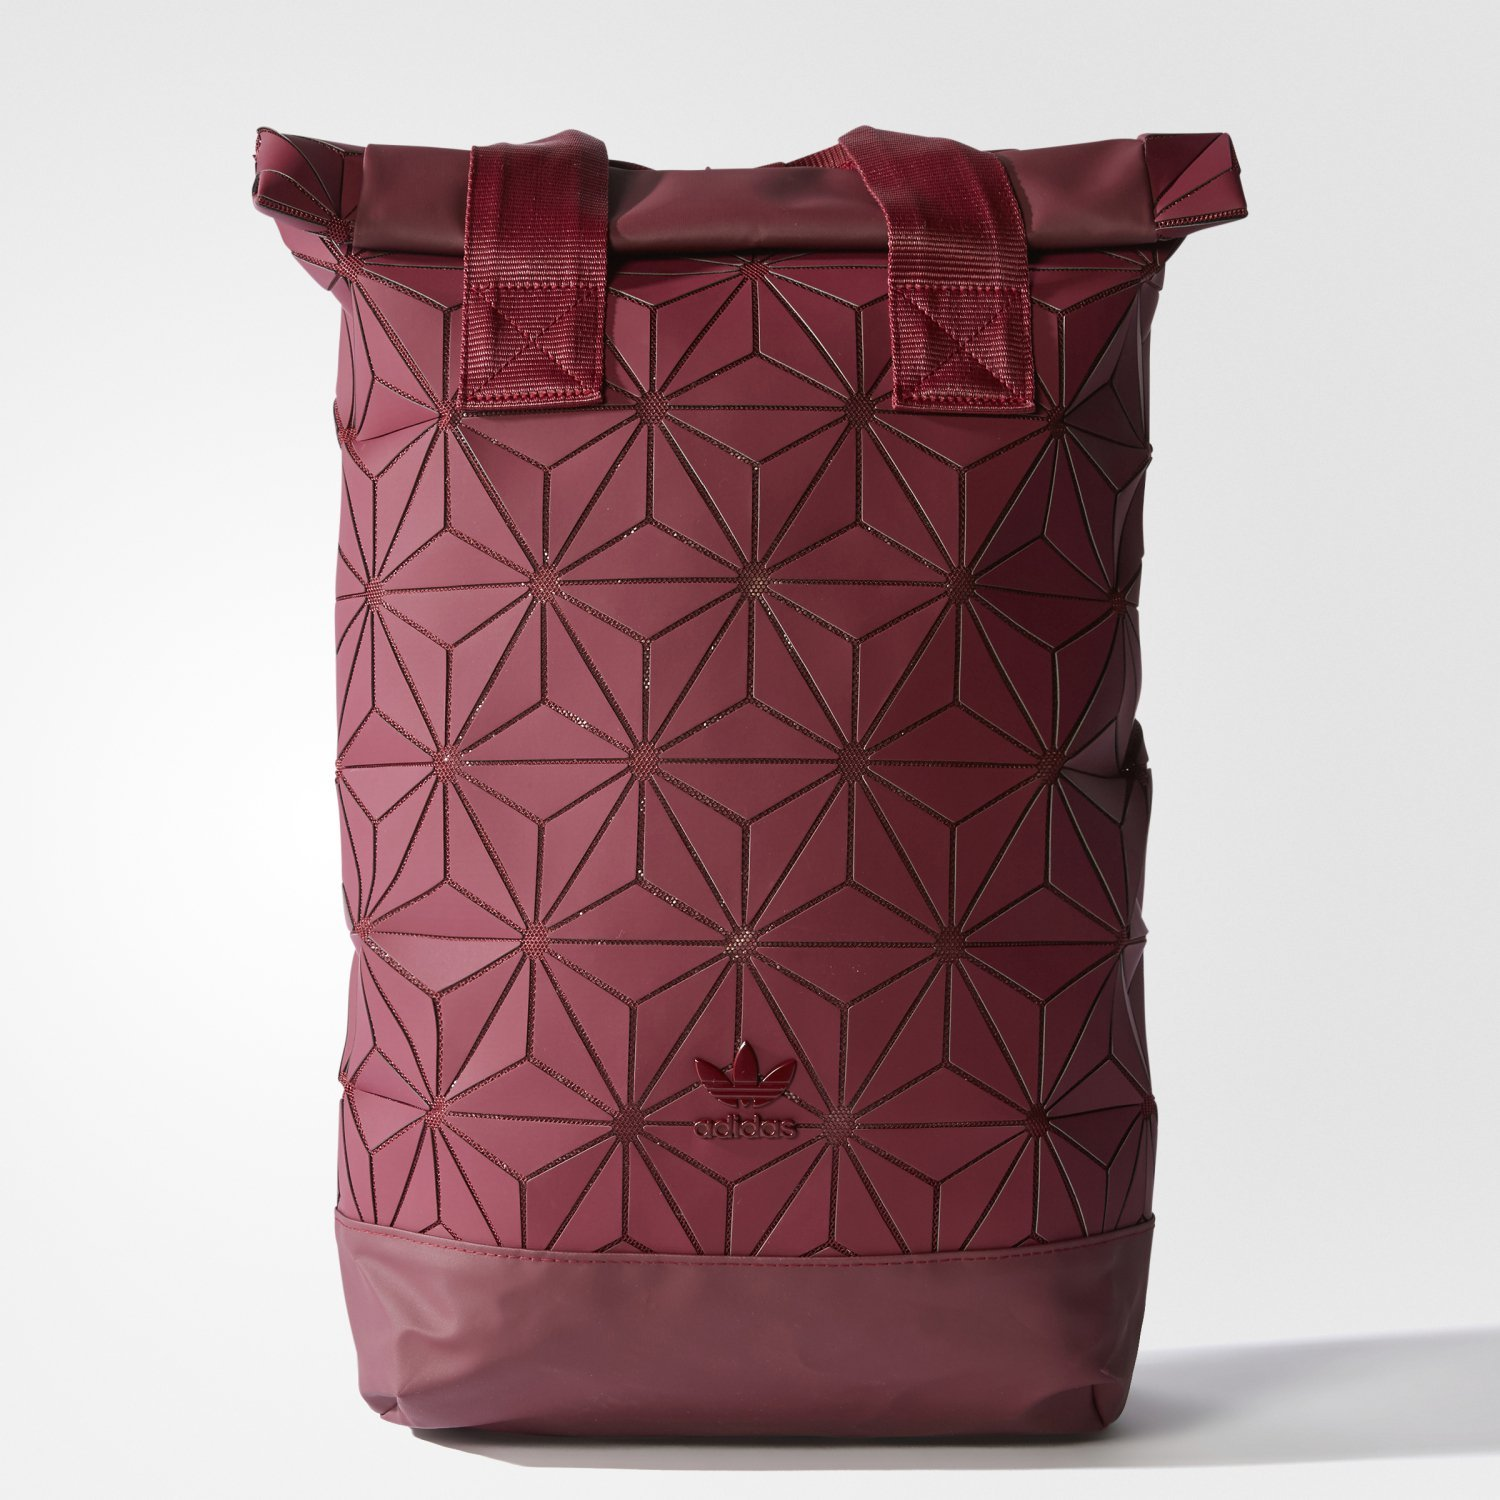 Adidas Originals) adidas Originals DH0101 Original Slick Backpack [BACKPACK ROLL TOP] College Eight Burgundy